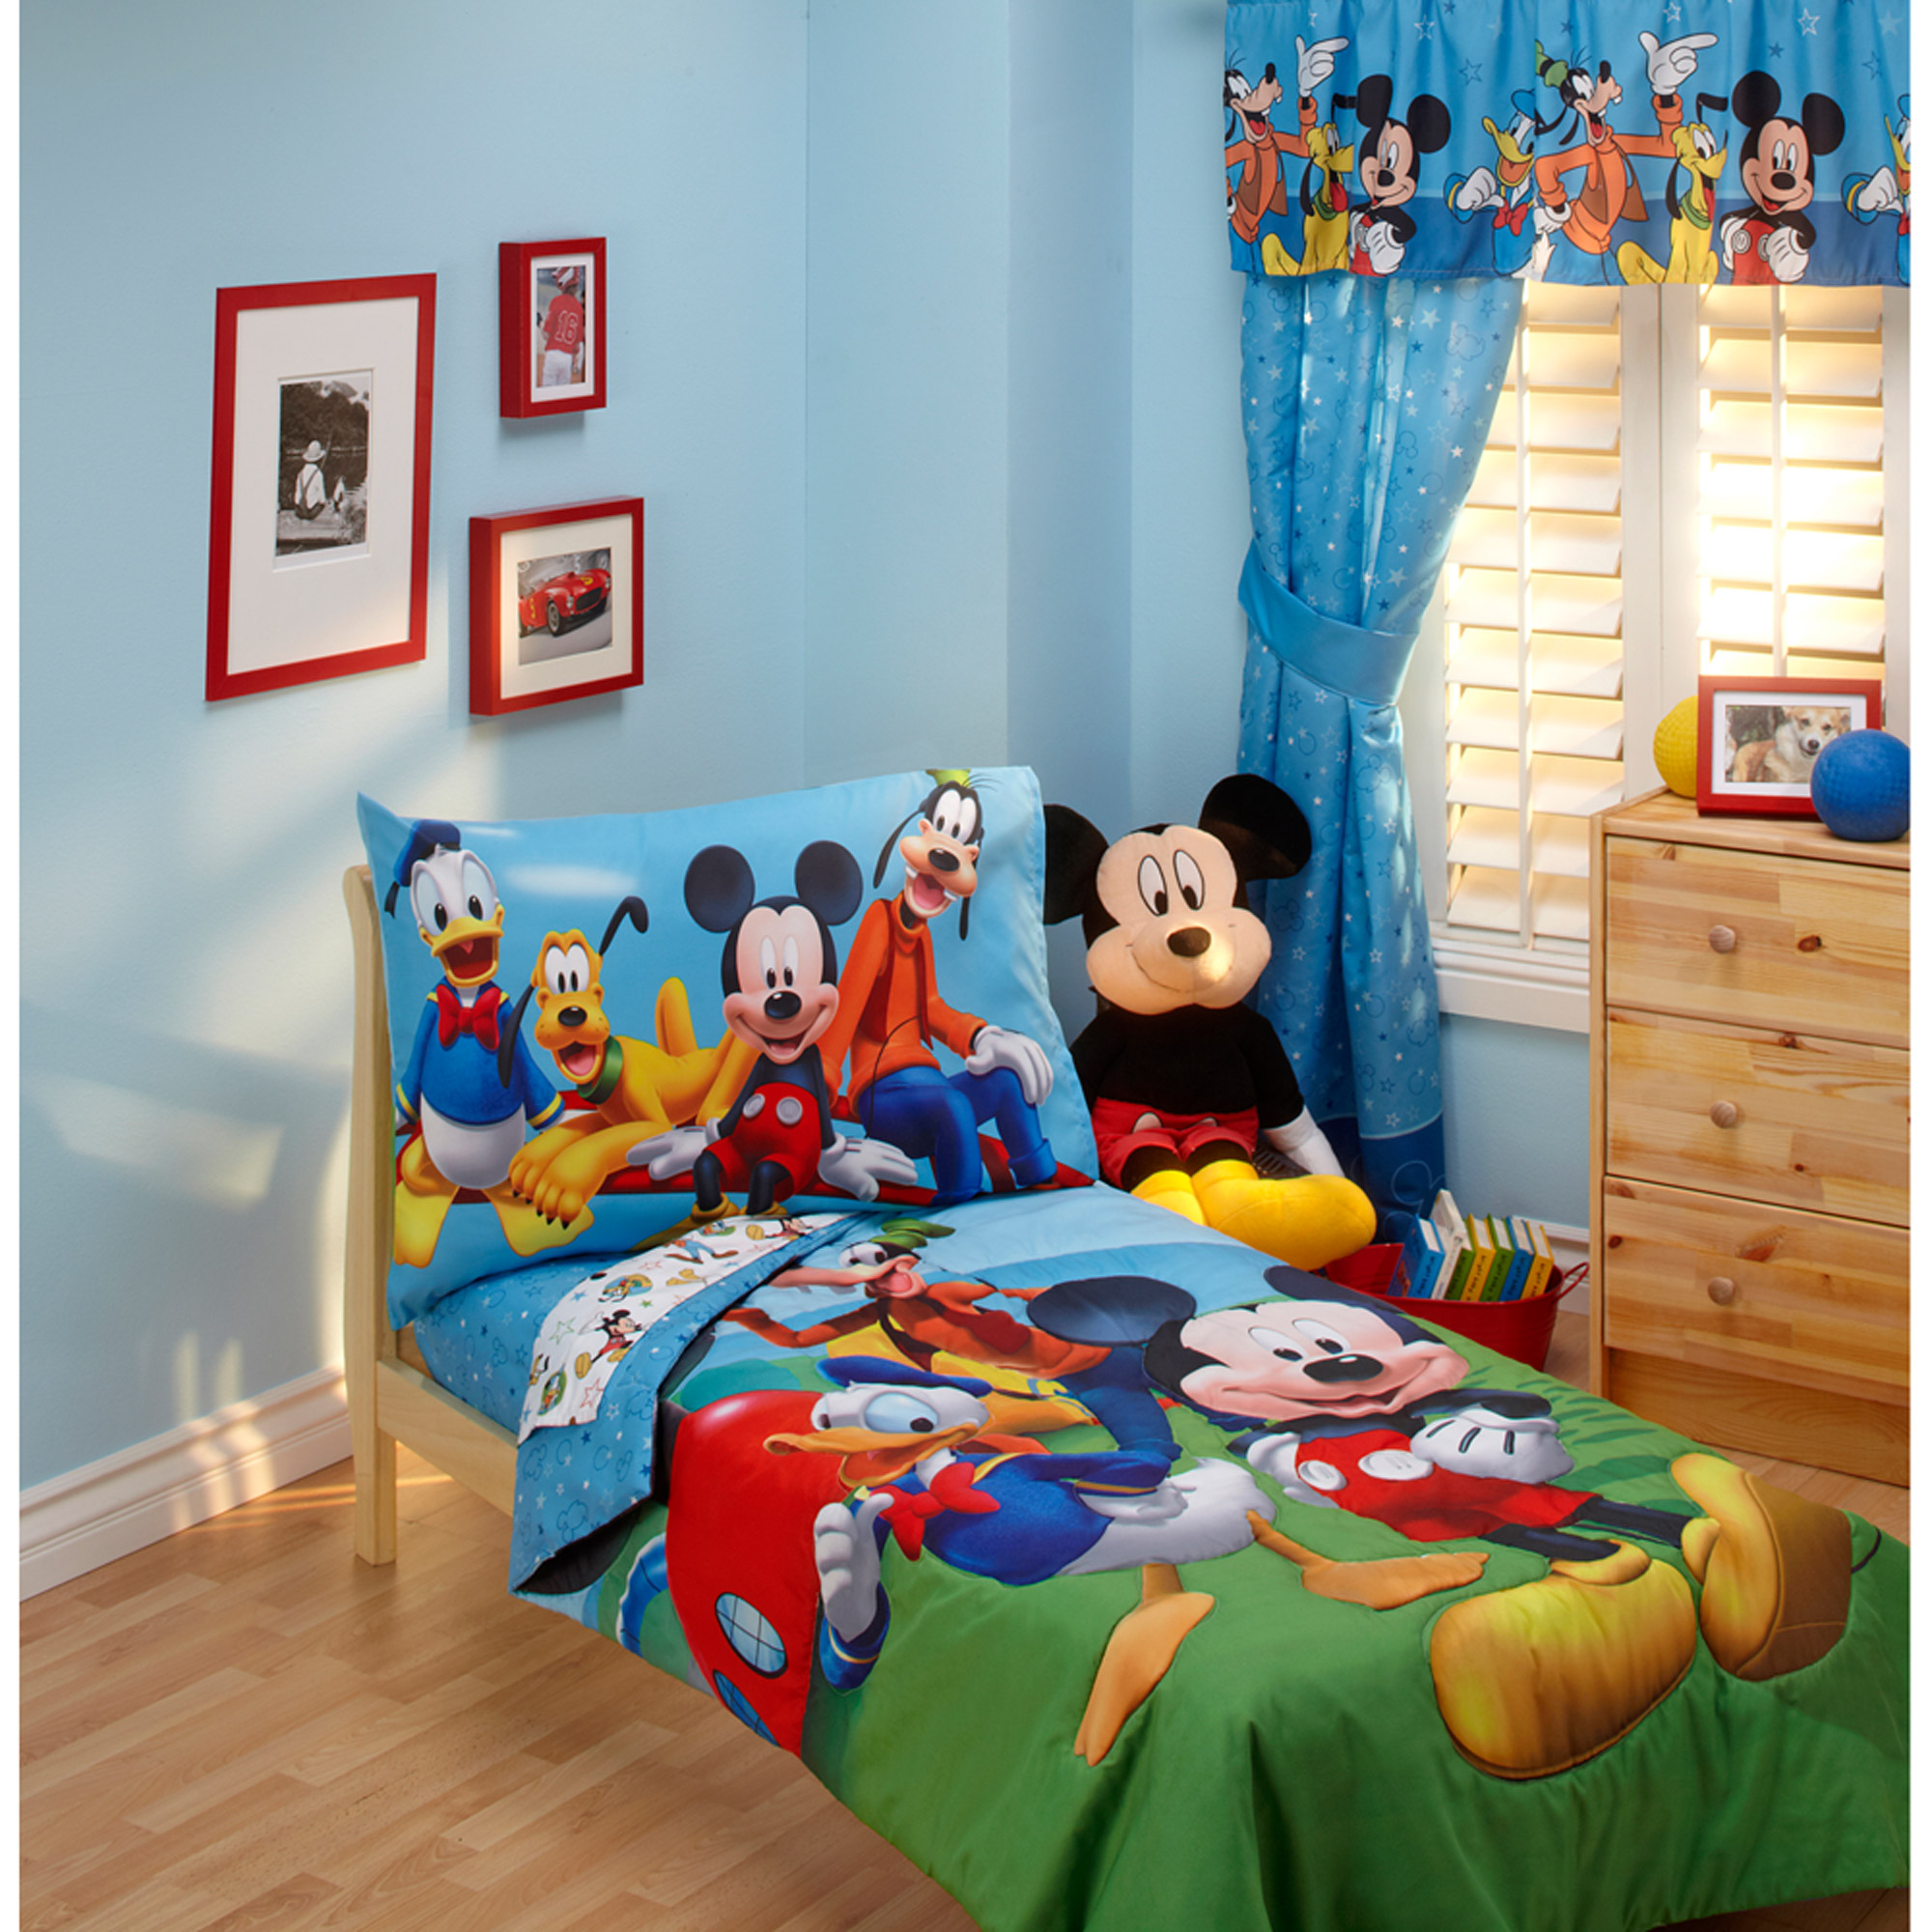 disney mickey mouse toddler bed bedding bundle walmart com rh walmart com mickey mouse bedding set toddler mickey mouse bedding set for adults